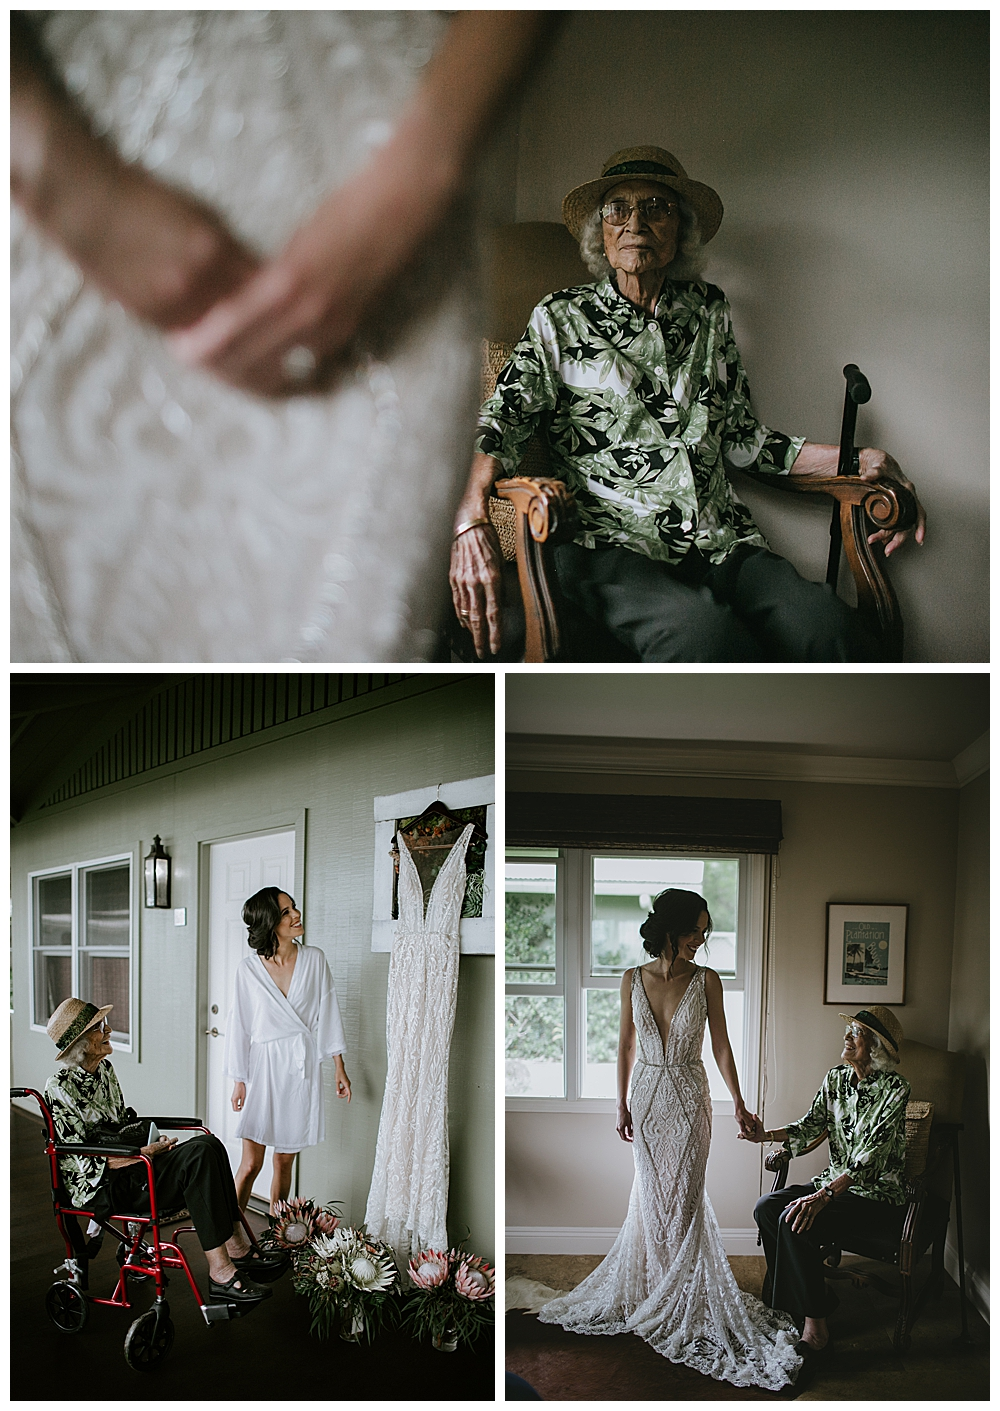 grandmother-with-bride-wedding-photography